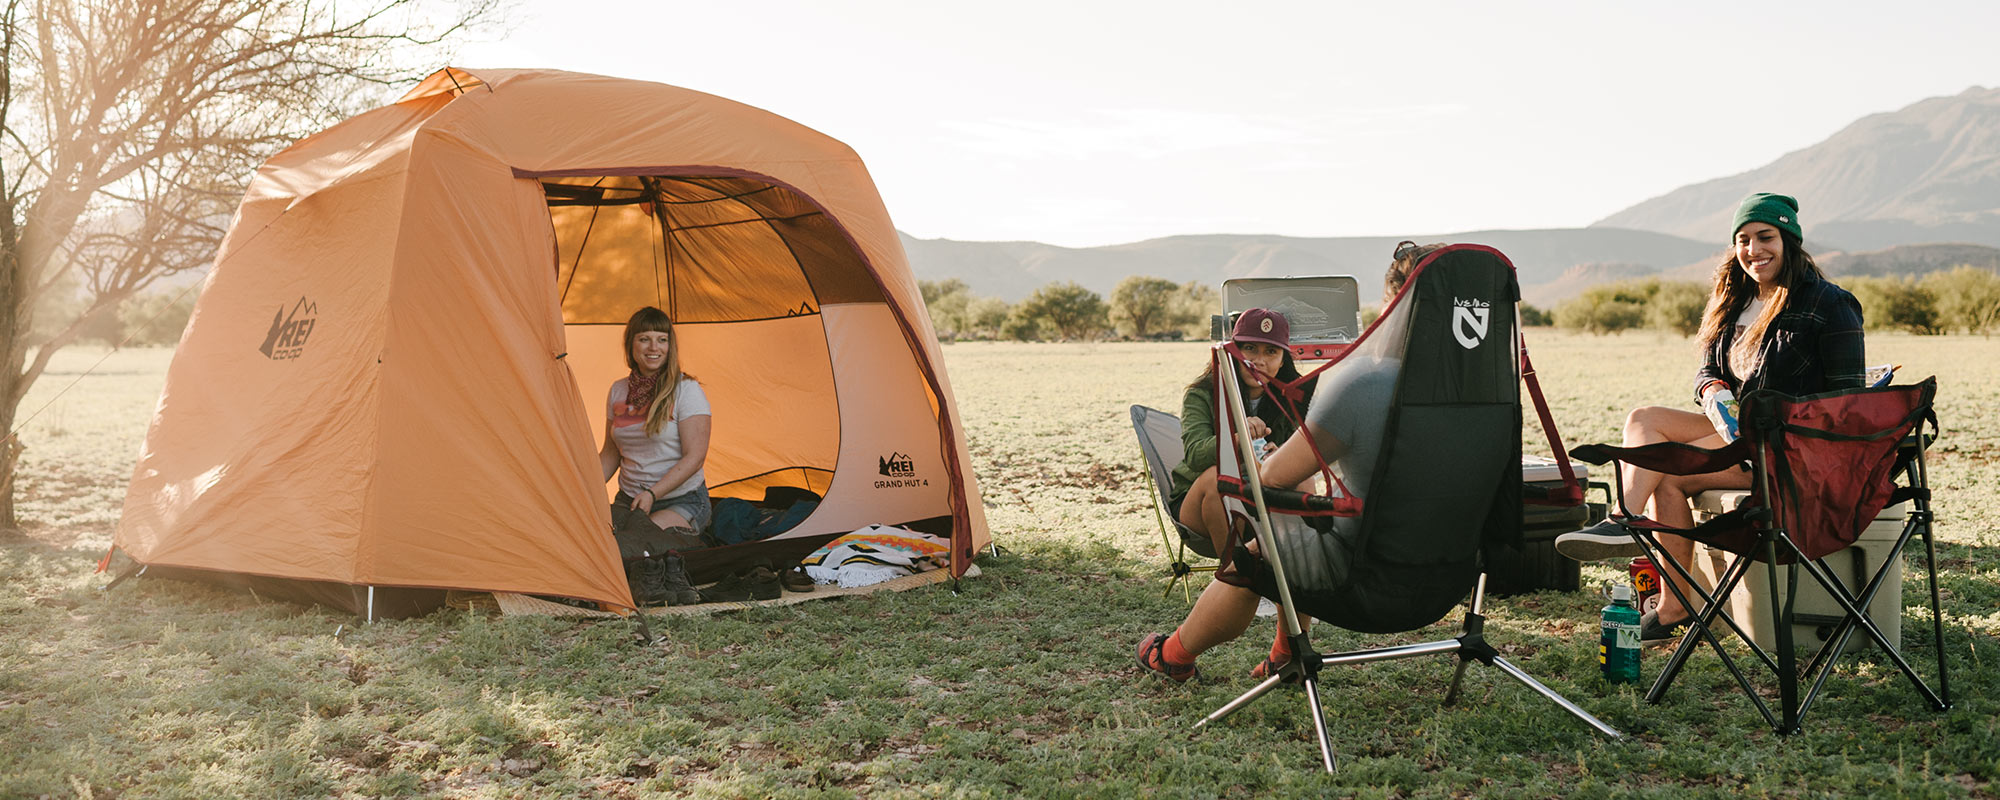 4 Camping The Best Camping Tents Of 2019 Rei Co Op Journal